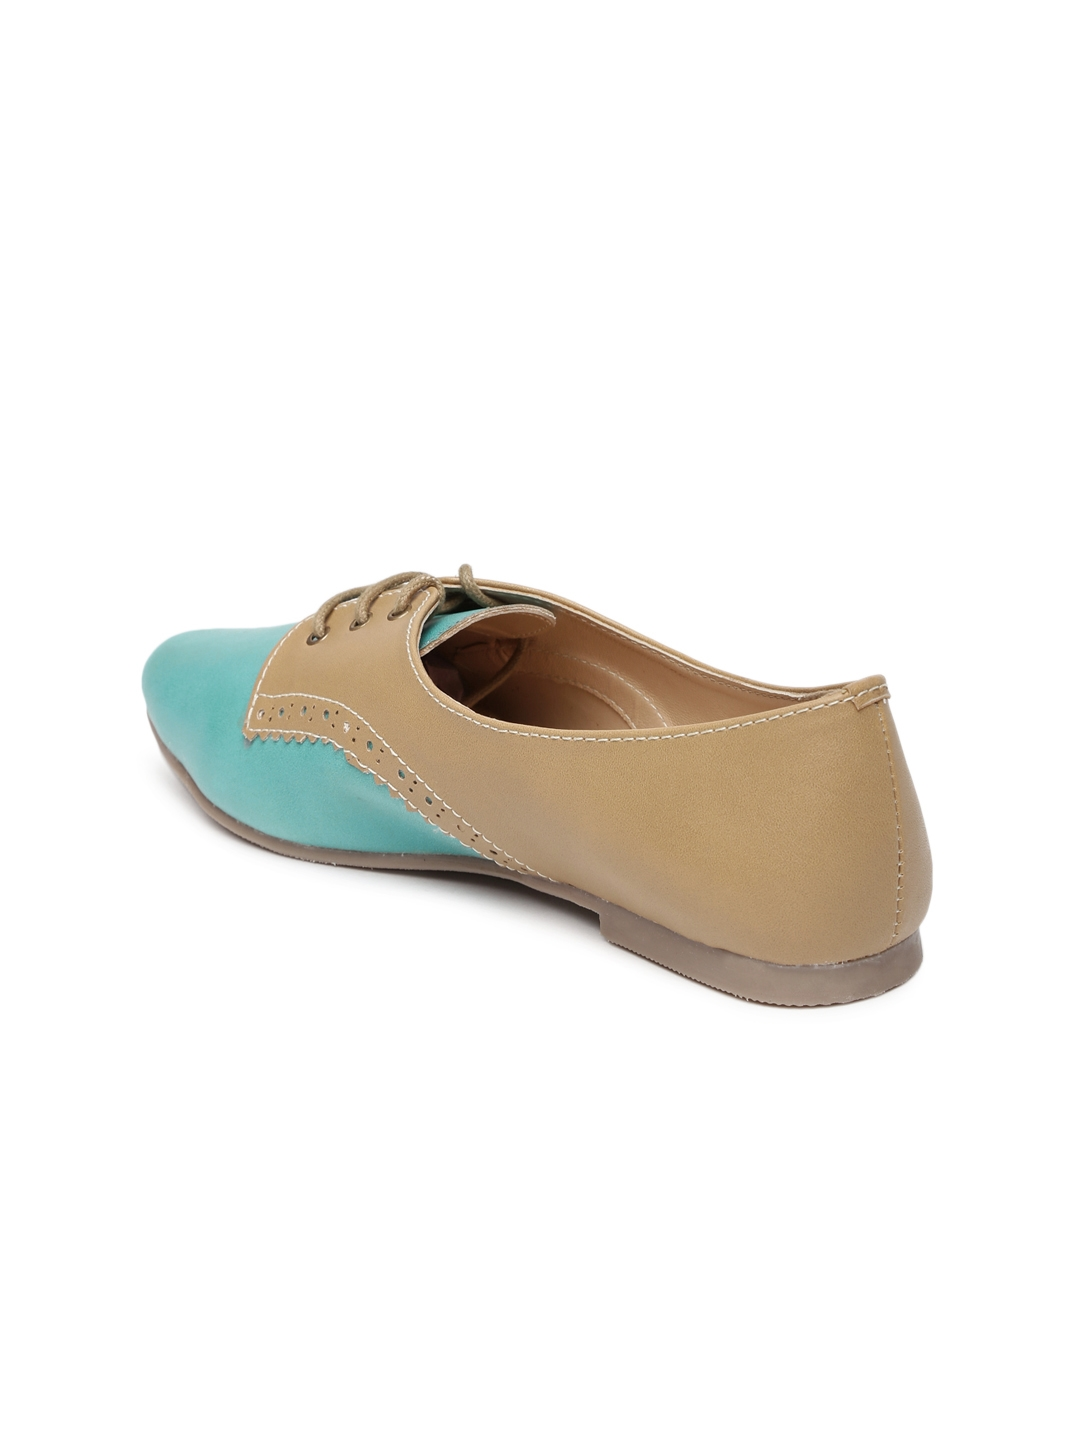 Buy Lavie Women Blue   Brown Colourblocked Casual Shoes - Casual ... fe2d200679b